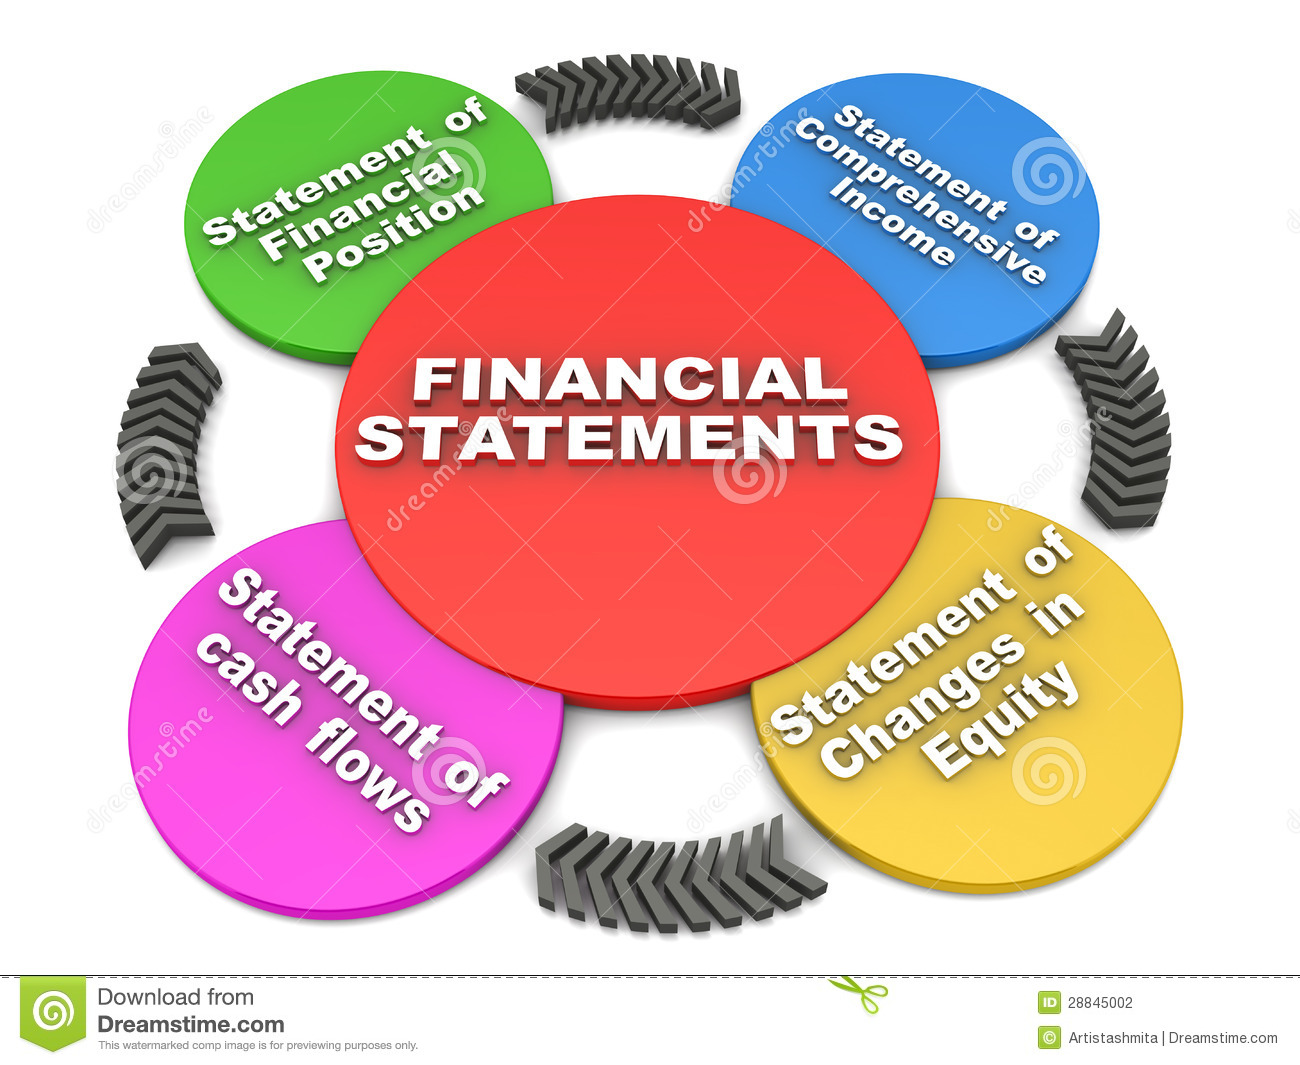 Financial Statements Photography Image 28845002 – Financial Statements